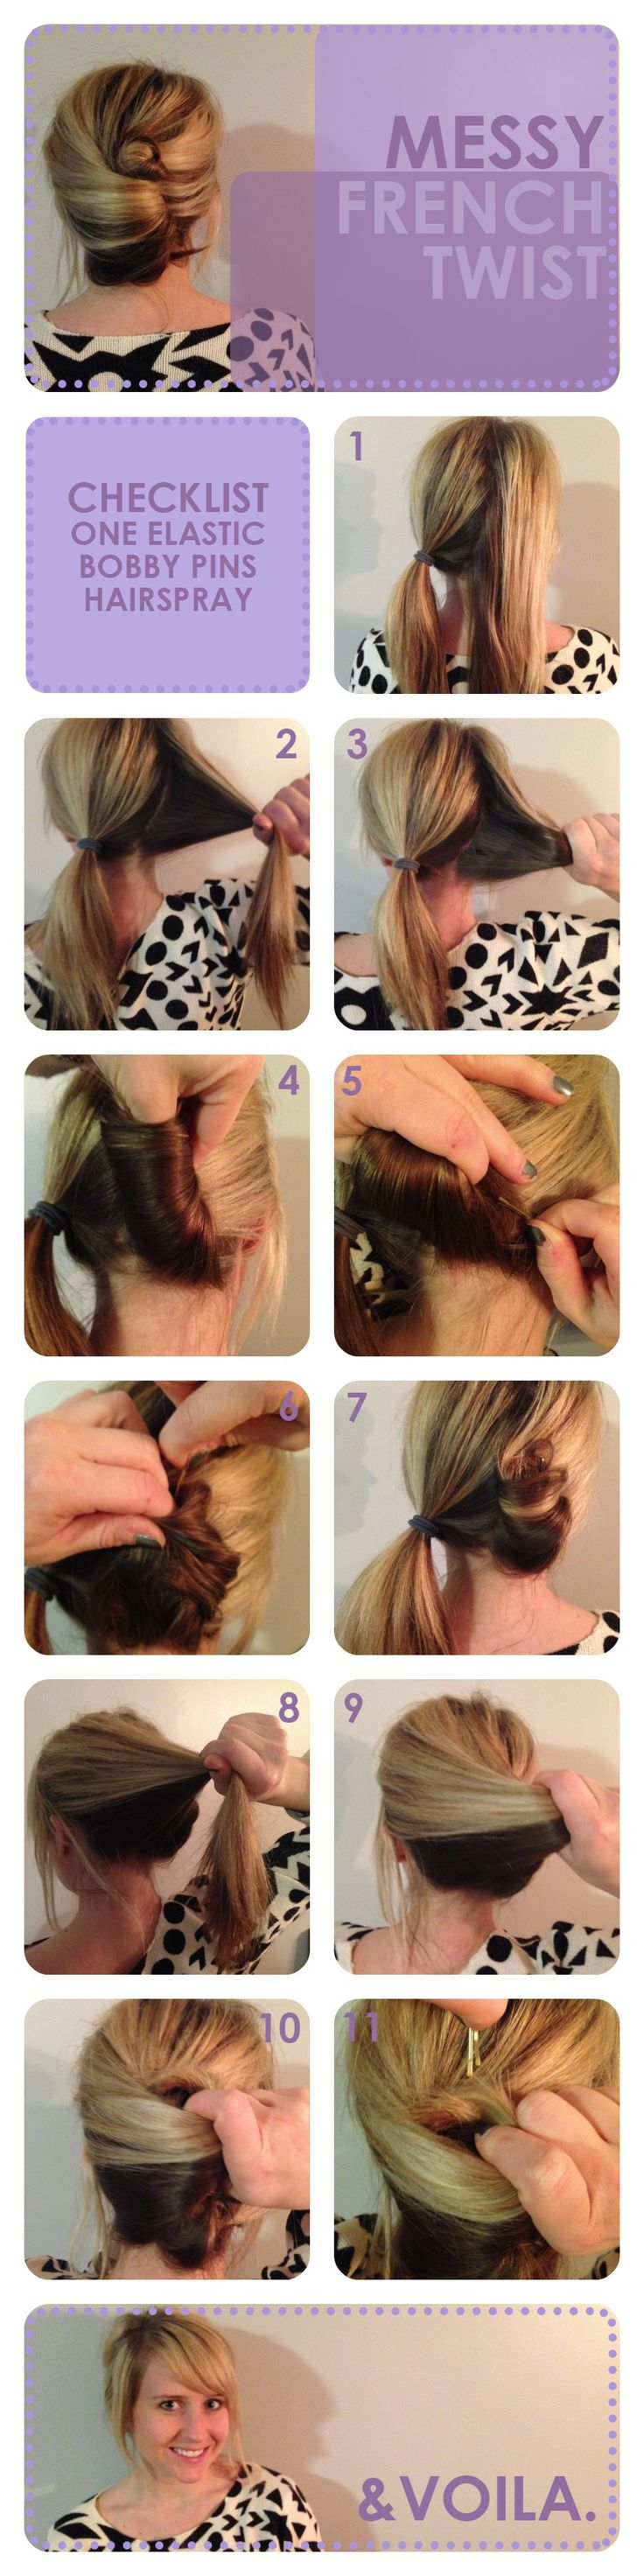 messy french twist! easy #hair tutorial - pin now, try later!